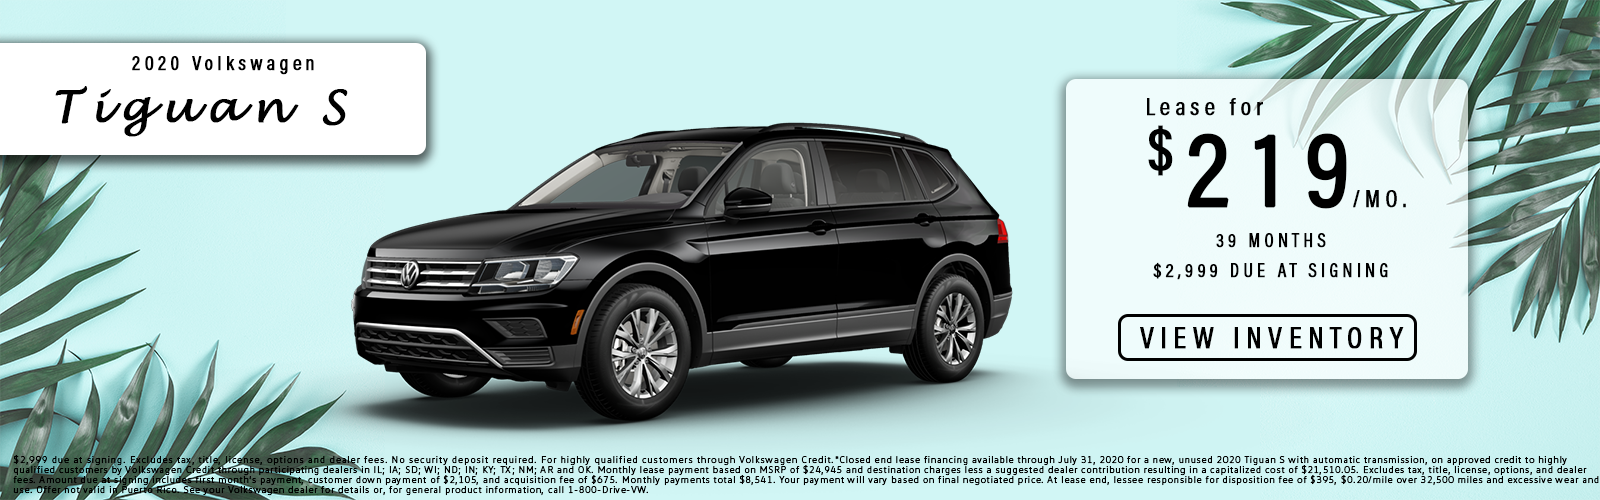 Tiguan lease offer